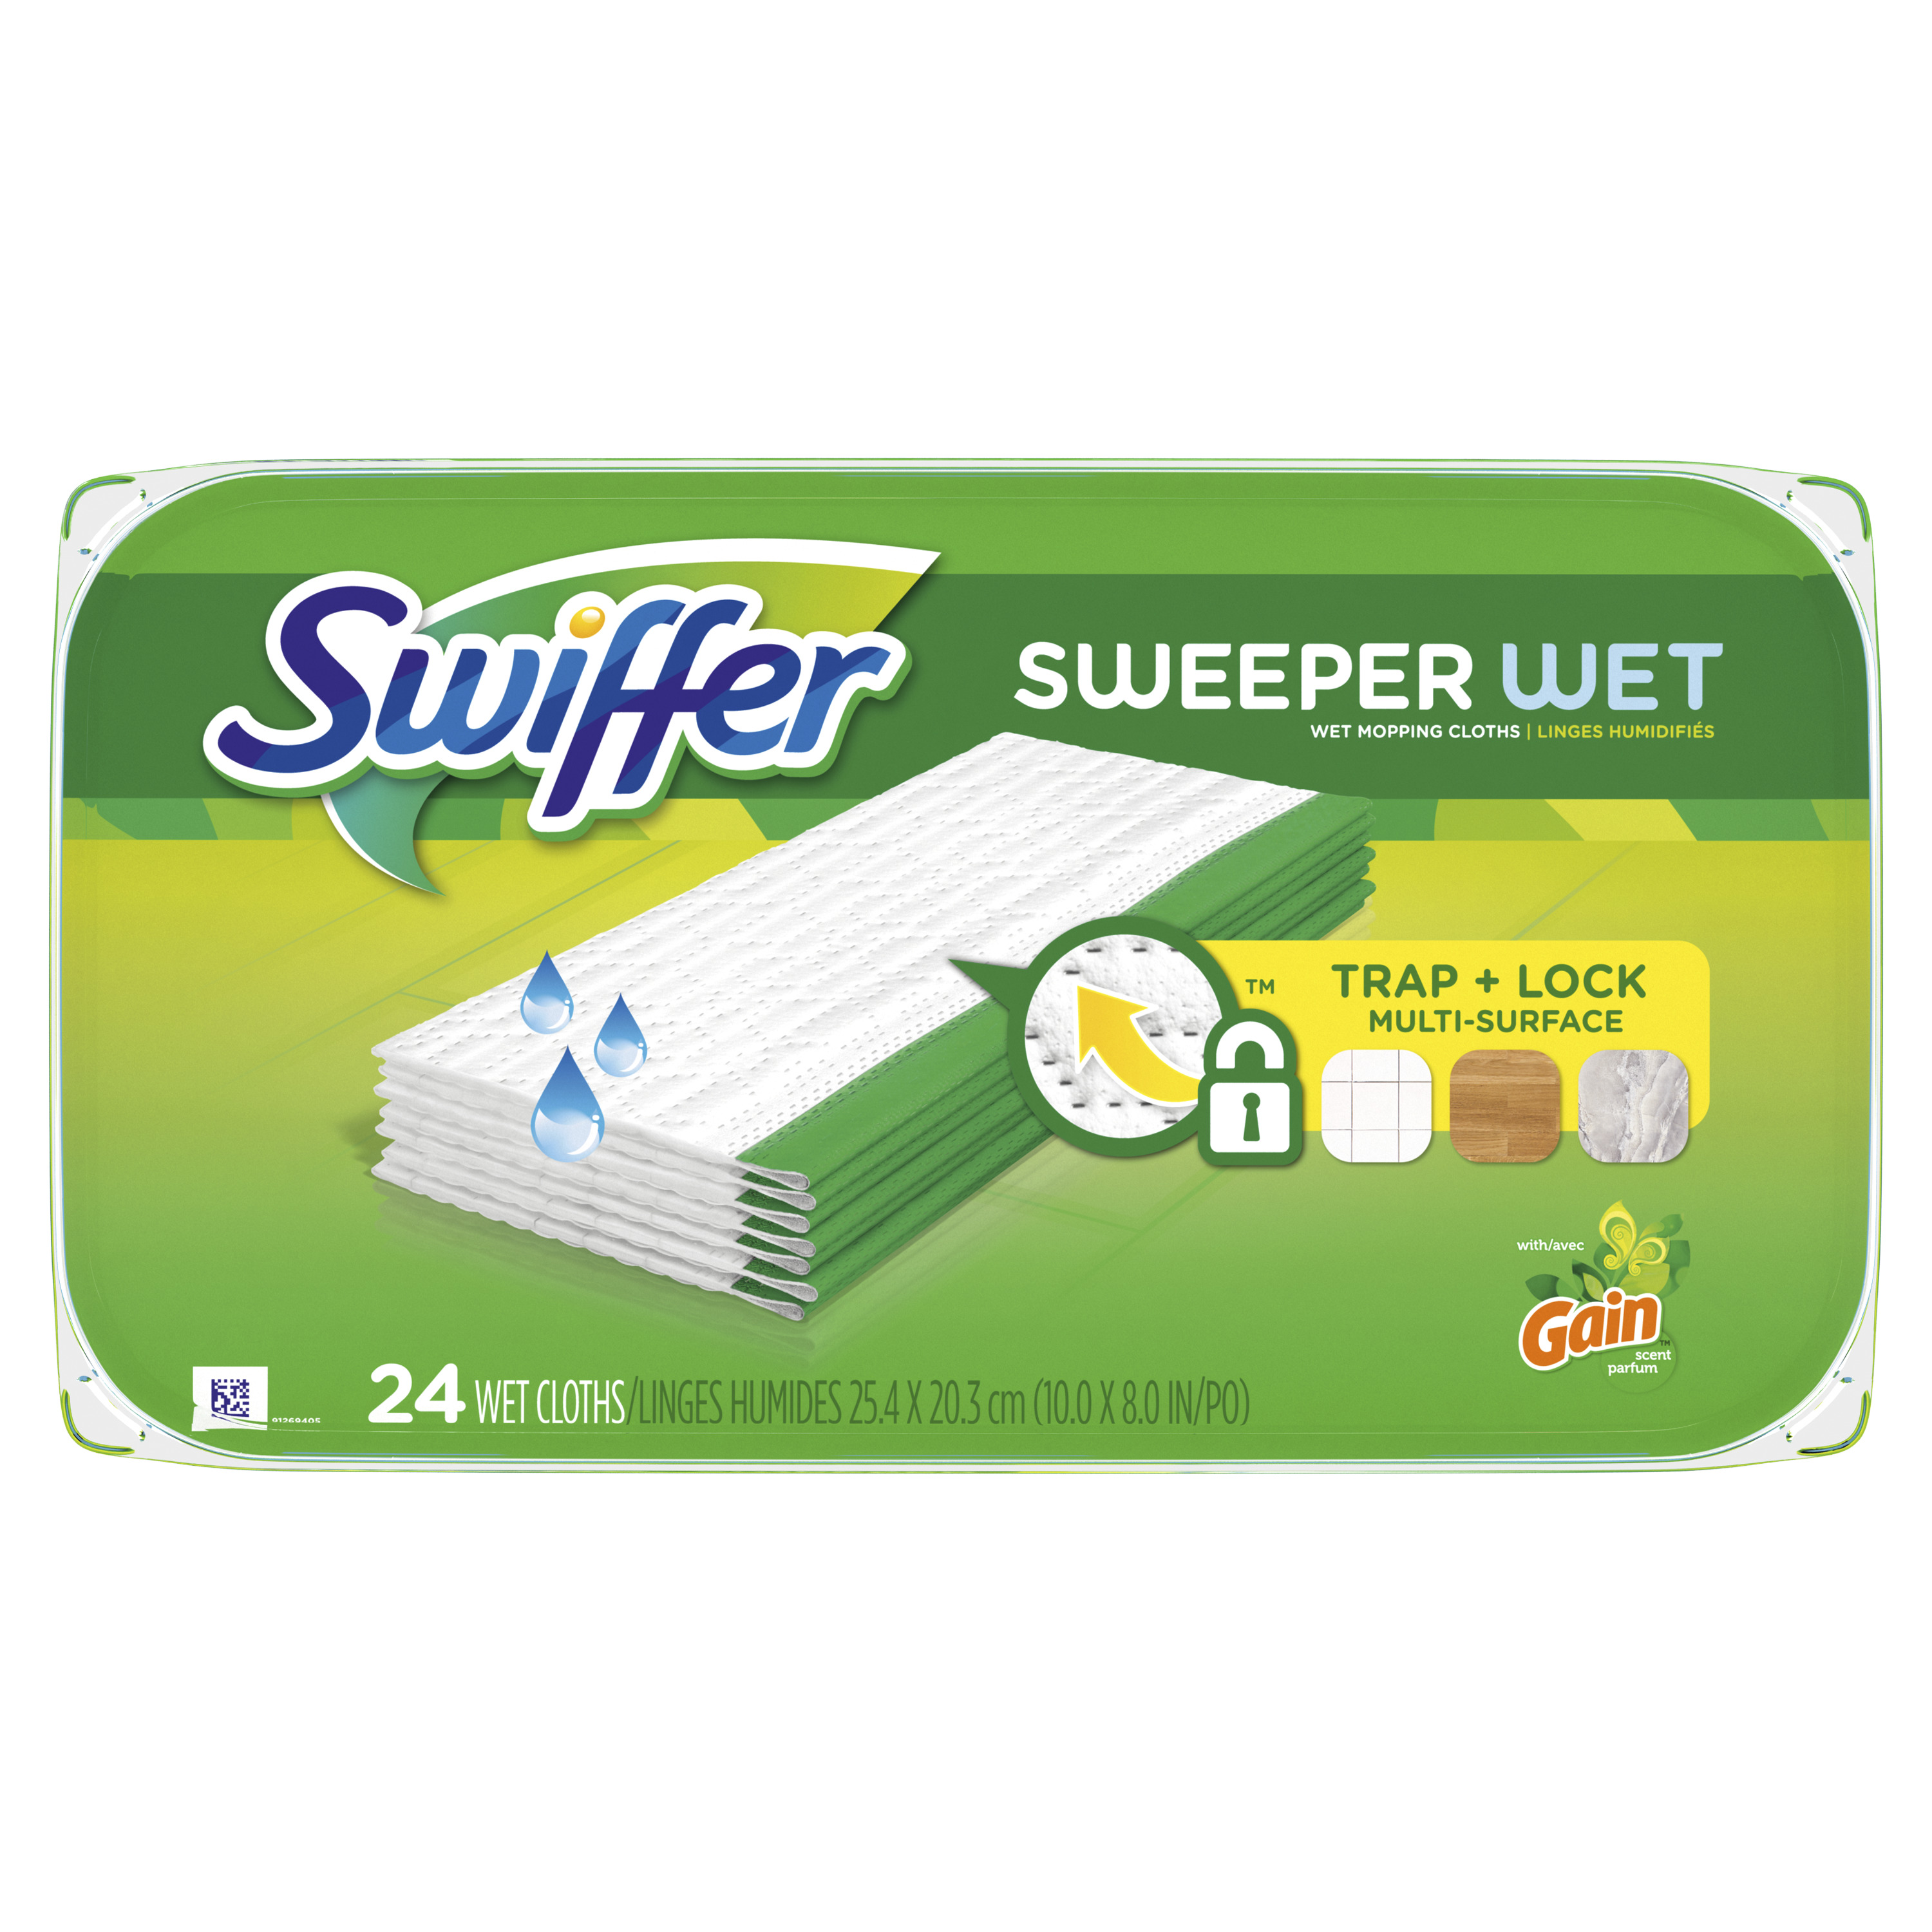 Swiffer Sweeper Wet Mopping Cloths, Multi Surface Refills, with Gain Scent, 24 Count